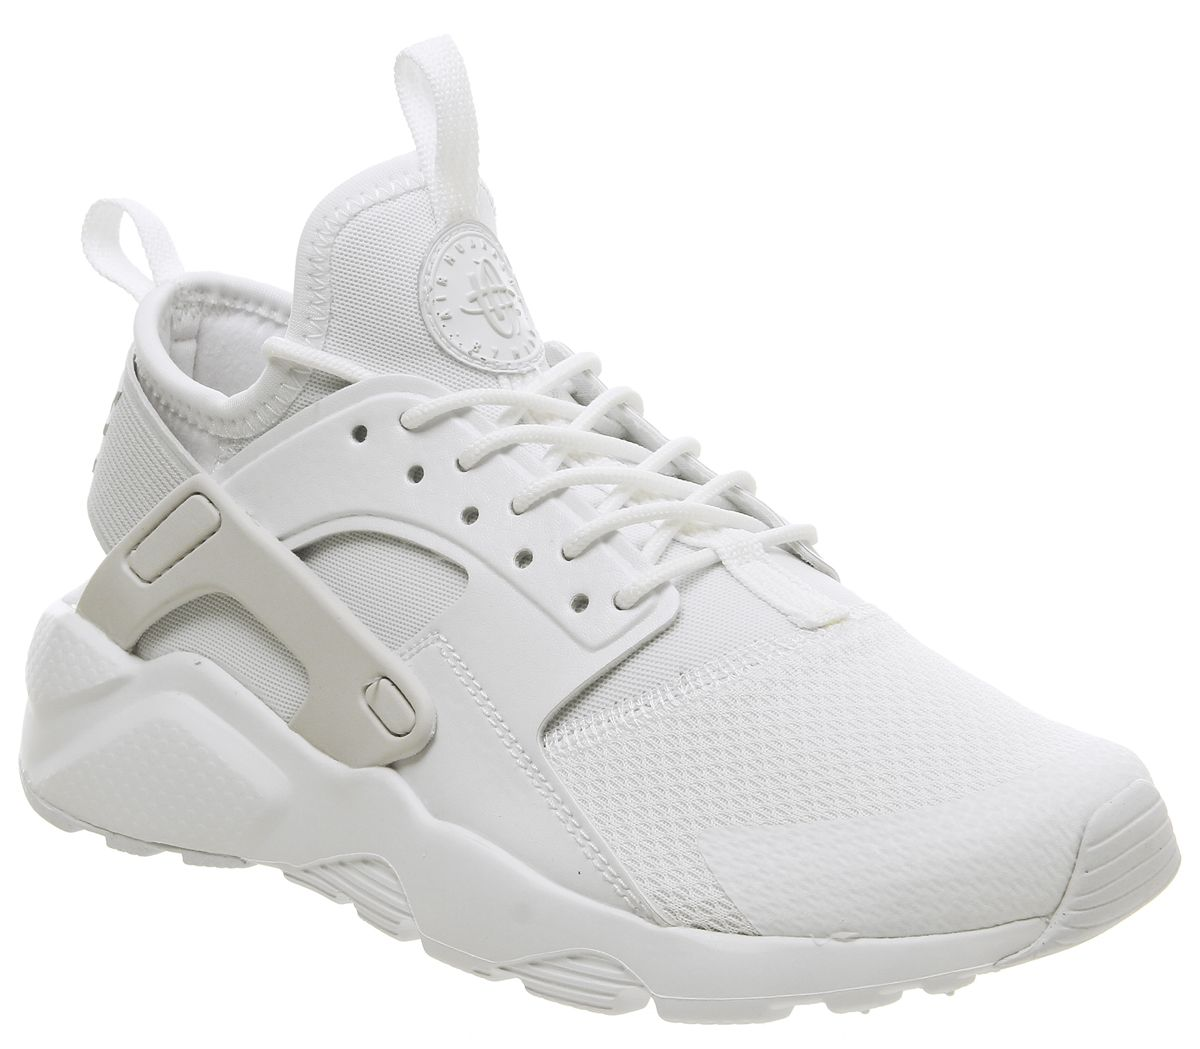 5f1208b6f5c2 Nike Huarache Ultra Gs Trainers White White Vast Grey - Hers trainers